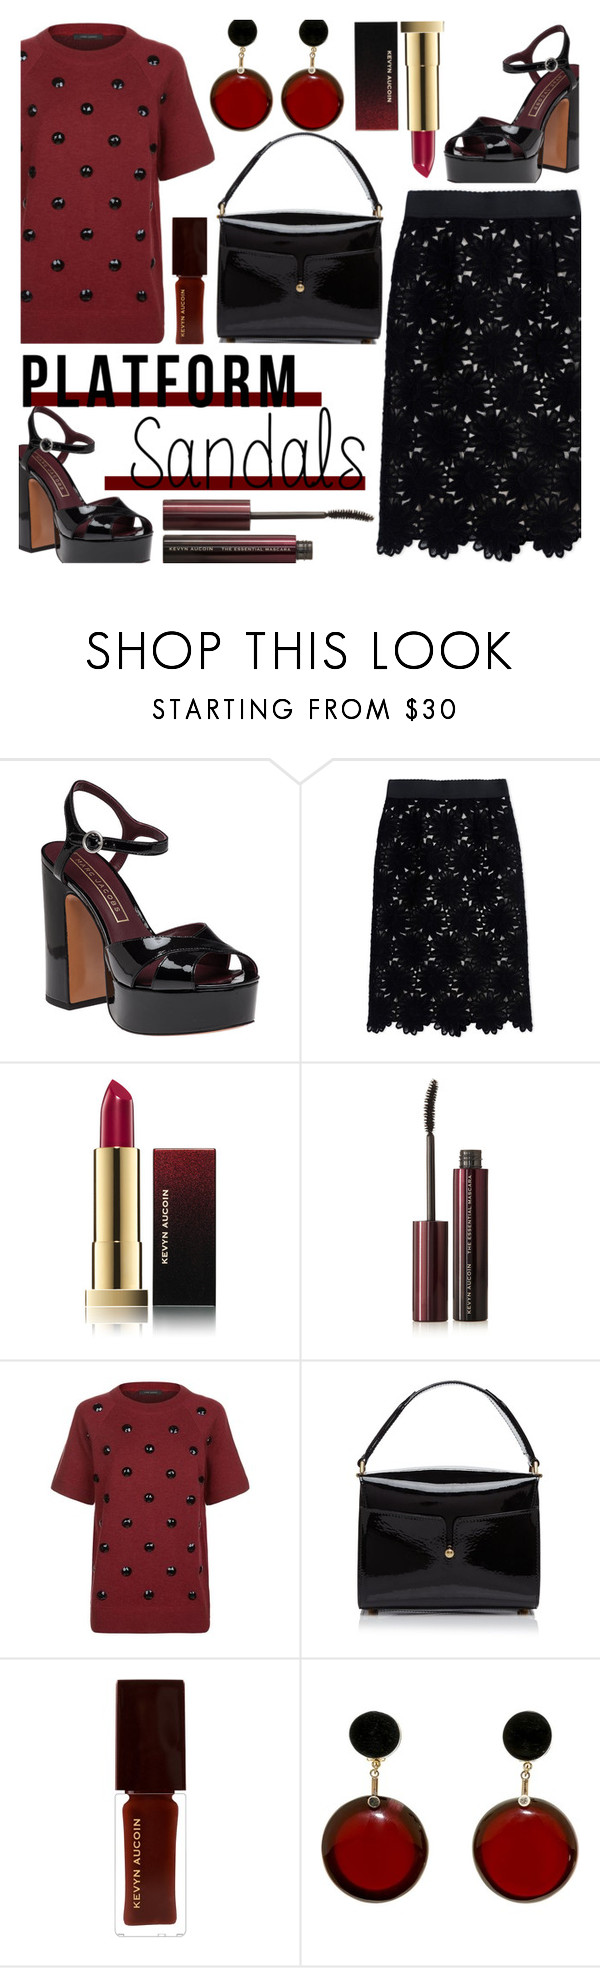 """""""Platform Sandals"""" by rasa-j ❤ liked on Polyvore featuring Marc Jacobs, Dolce&Gabbana, Kevyn Aucoin, Marni, platforms, womenfashion and summer2016"""